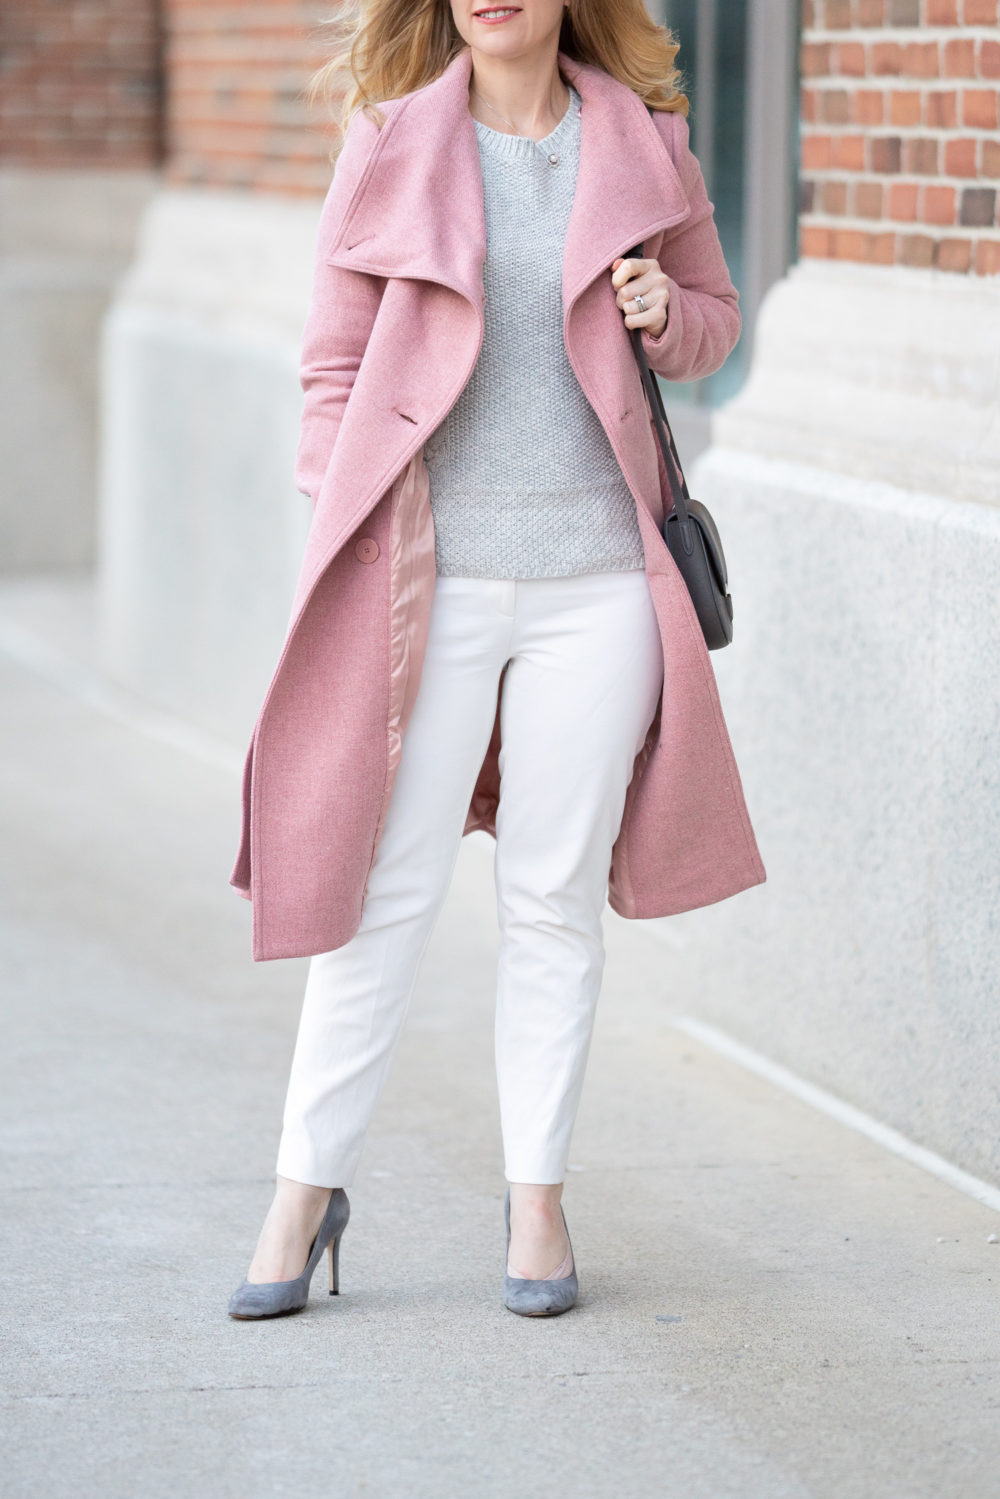 Petite Fashion and Style Blog | Mango Pink Coat | Pink Wool Coat | Pink Belted Wool Coat | Ann Taylor Cable Knit Sweater | White House Black Market Slim Ankle Pants